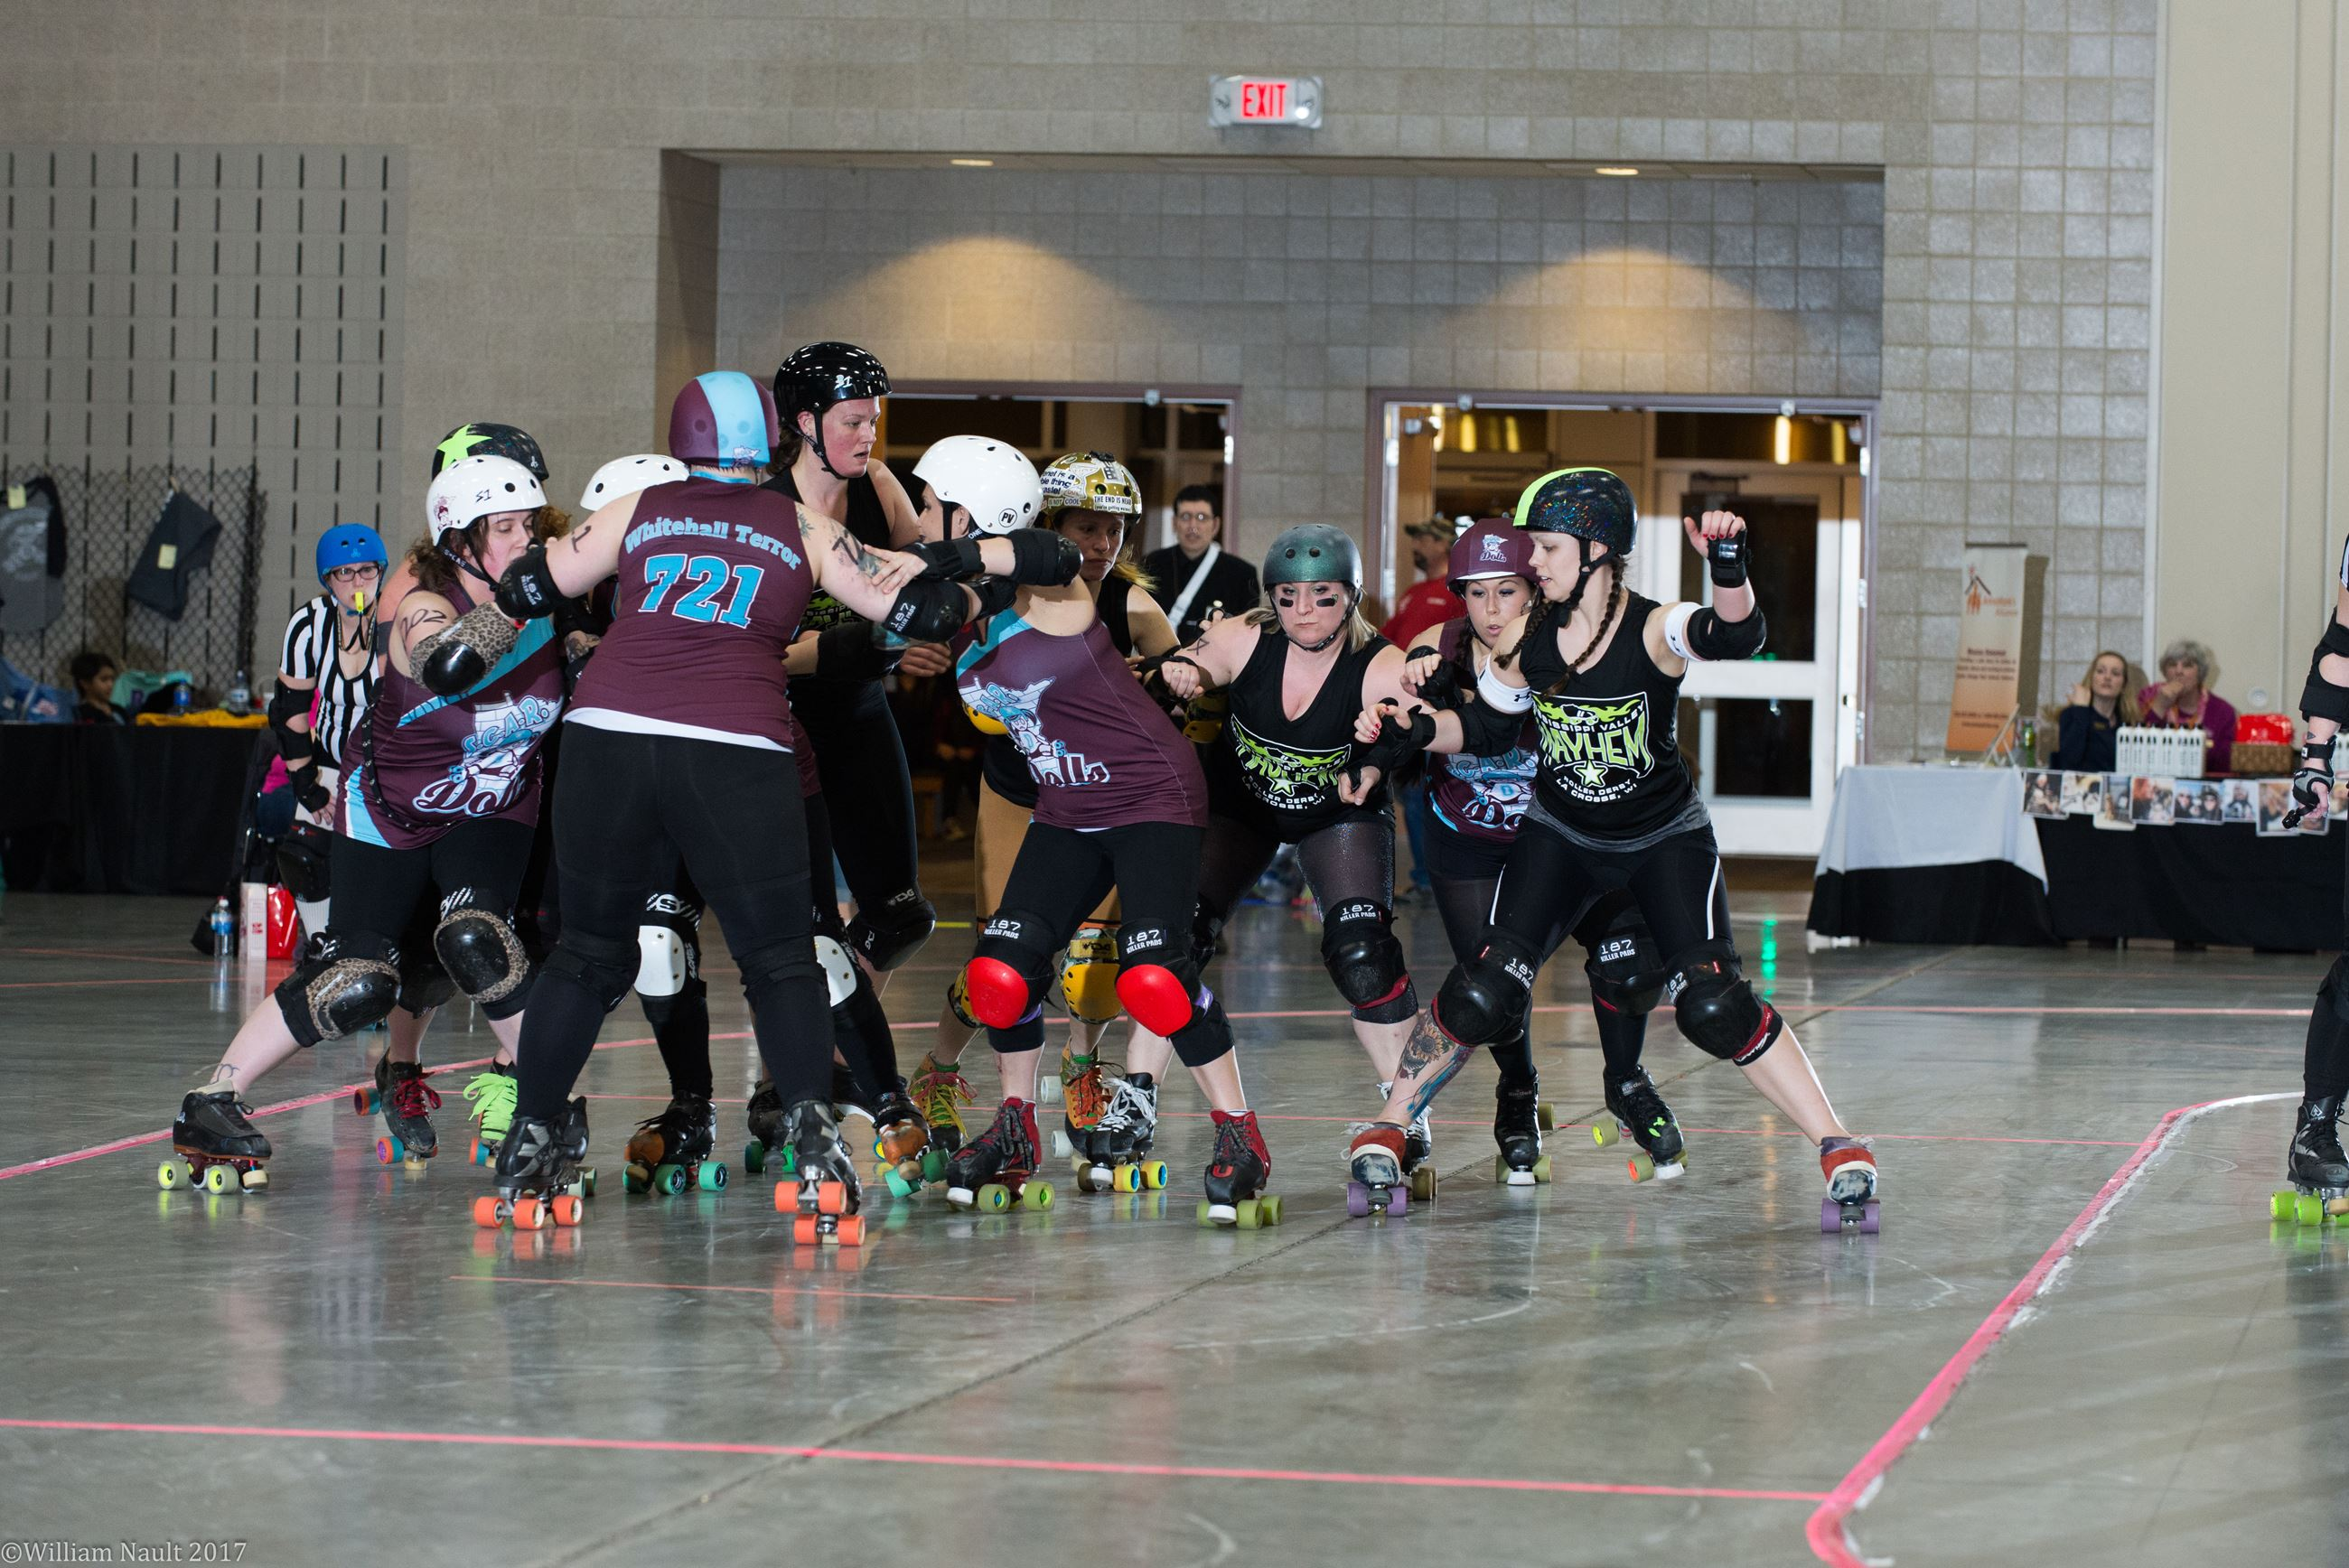 Two teams of women competing in roller derby